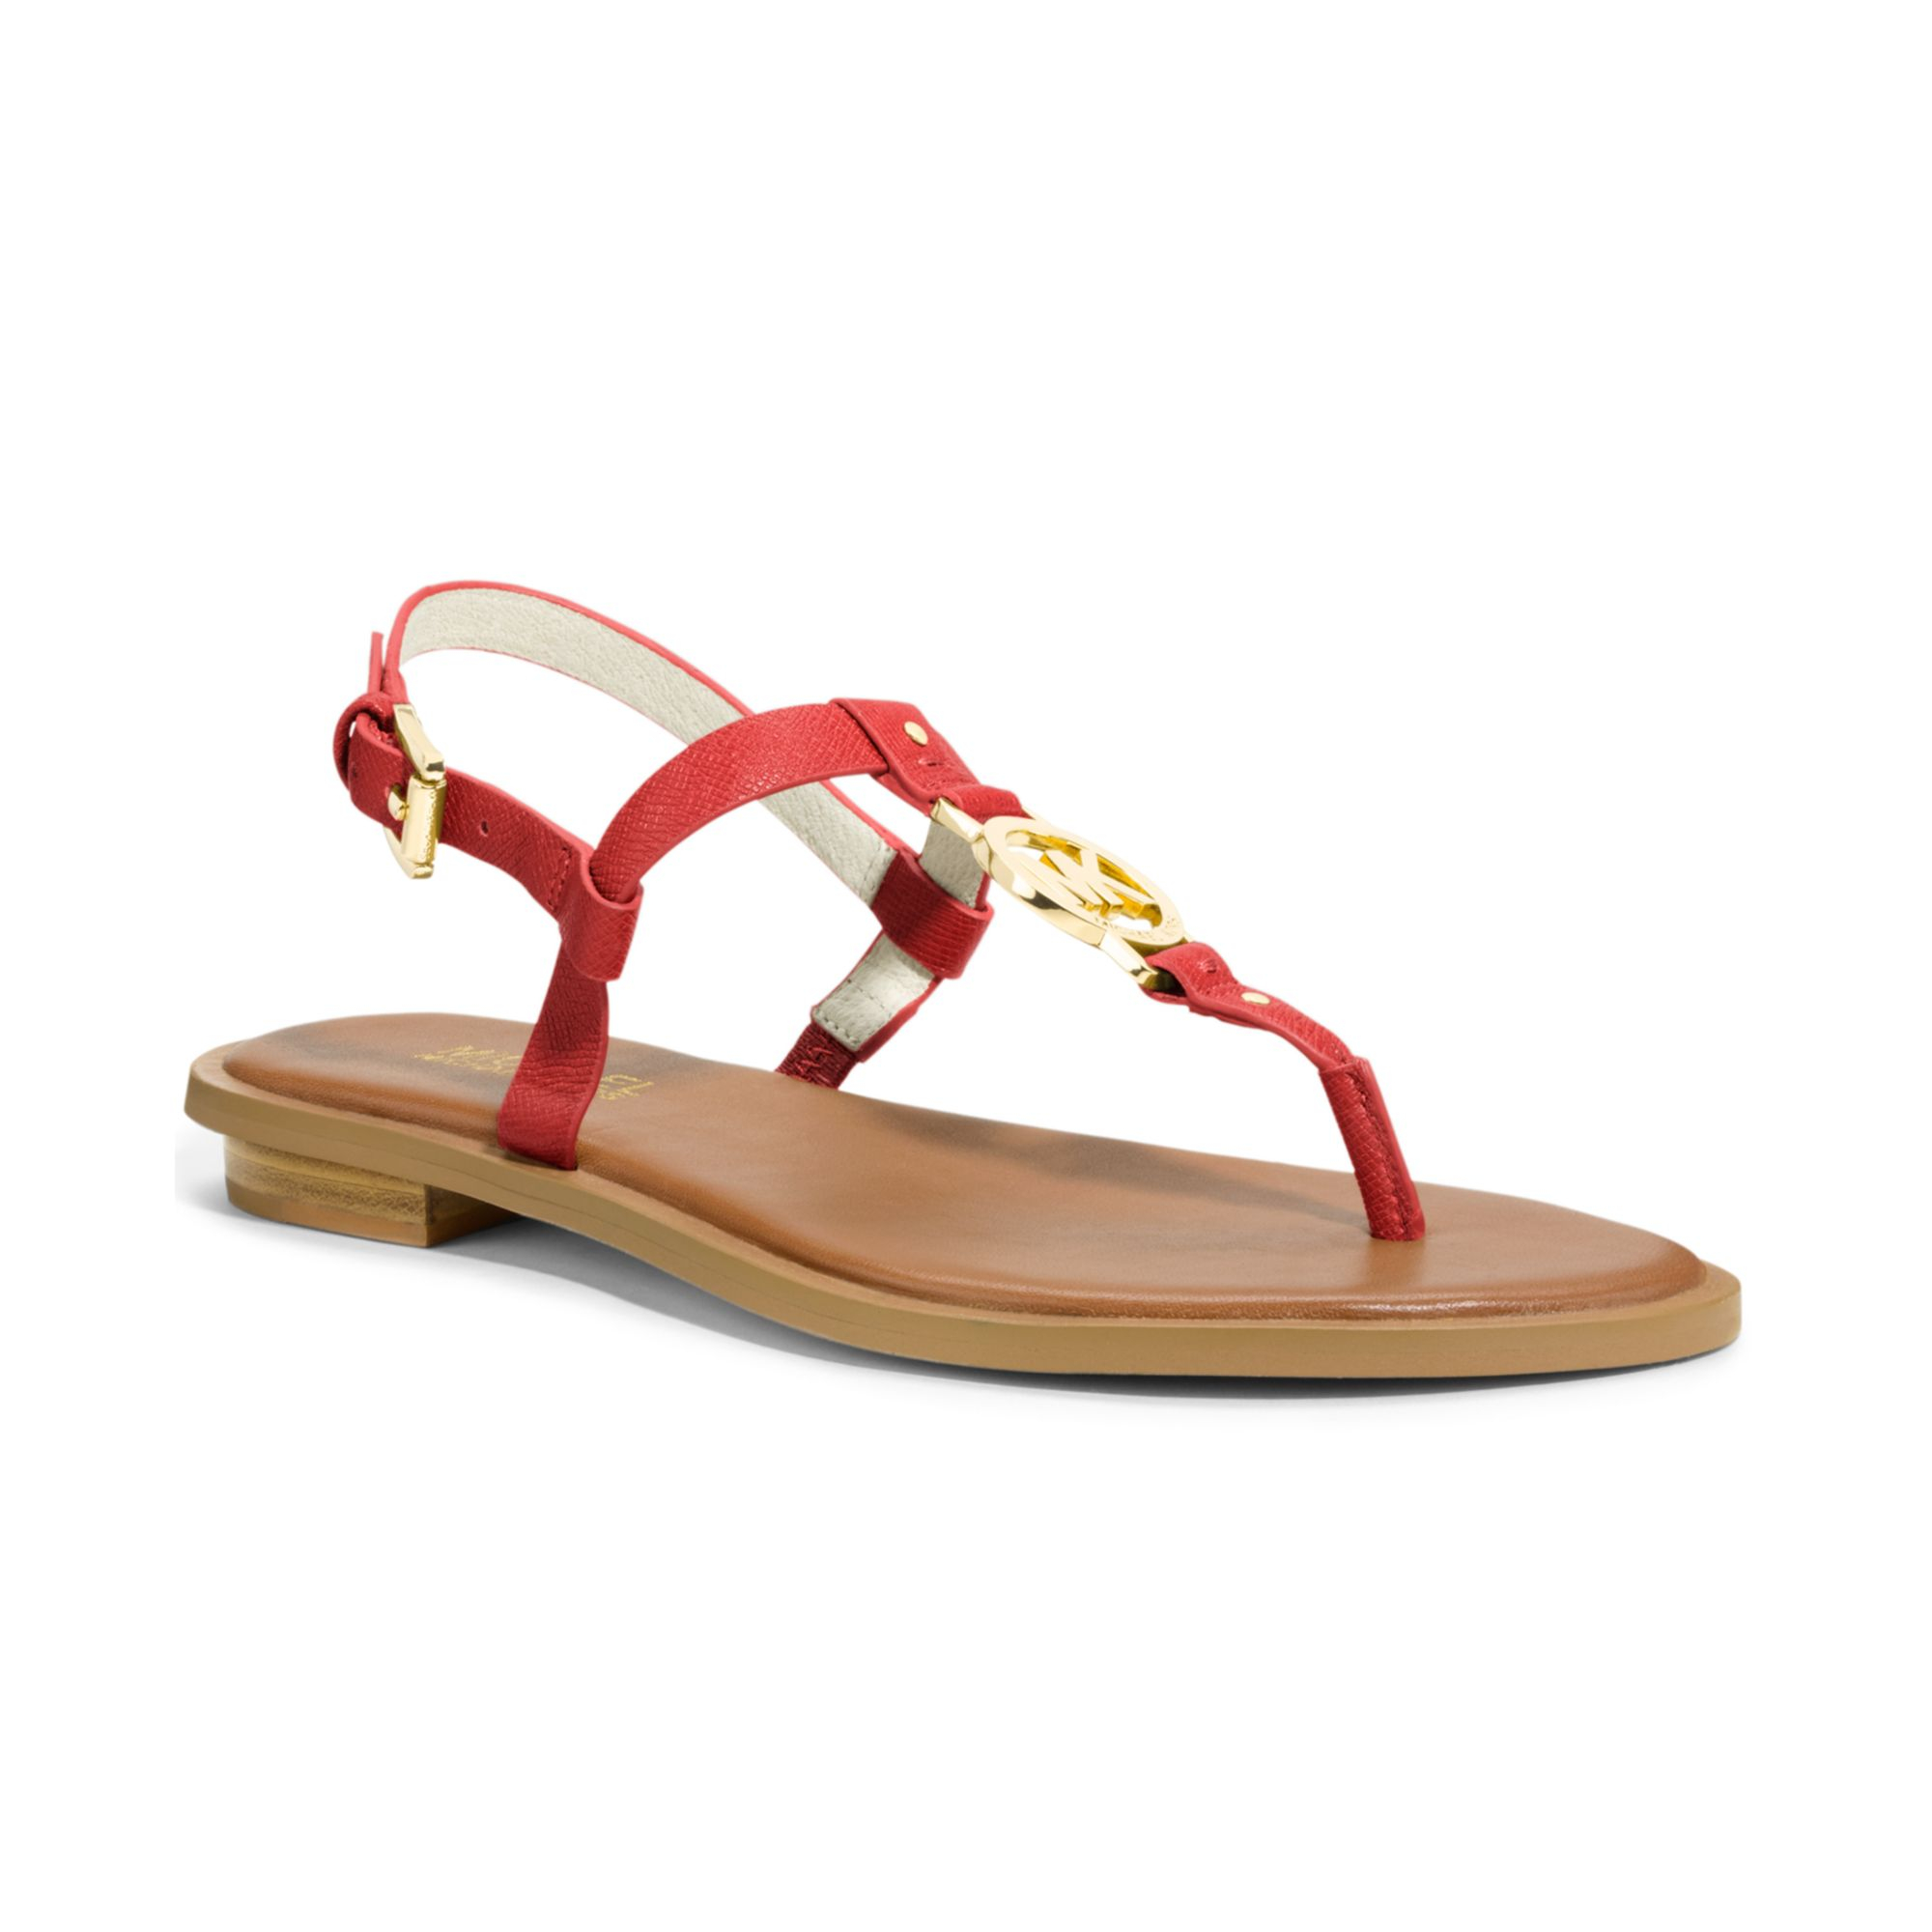 Lyst - Michael kors Michael Sondra Thong Sandals in Red